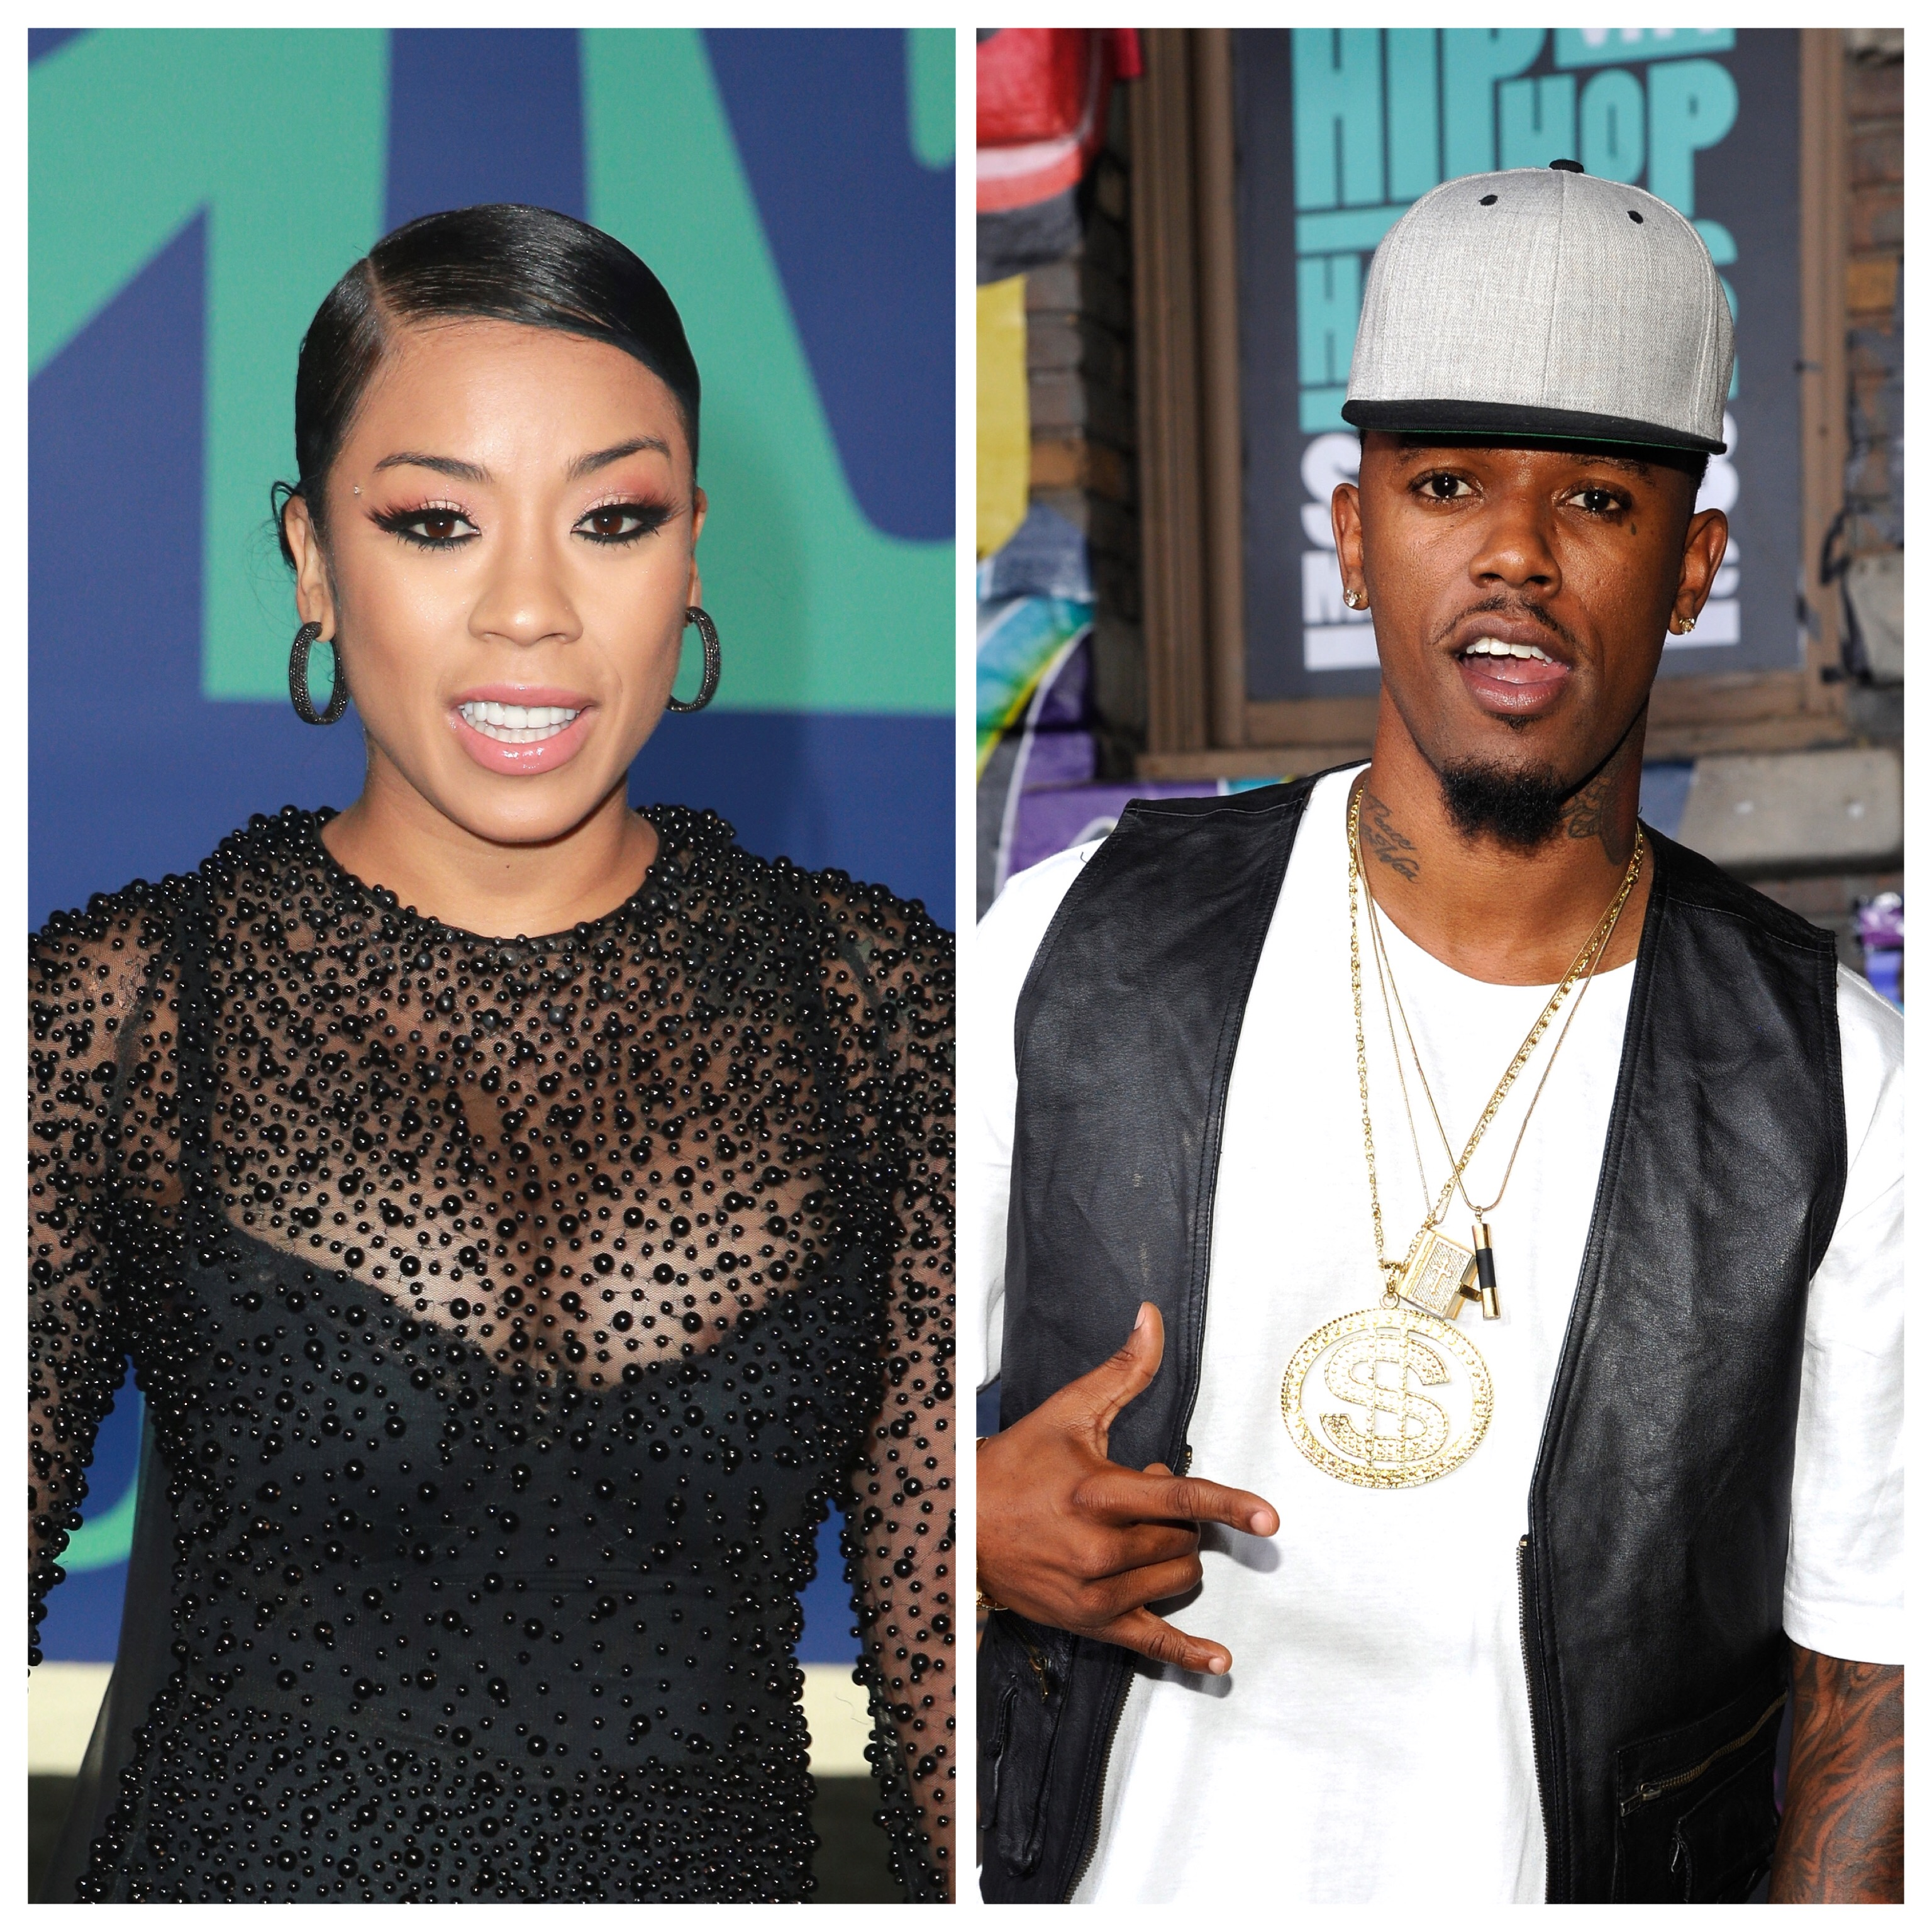 A Judge Is Urging Keyshia Cole To Finalize Her Divorce Or The Case Will Be Dismissed